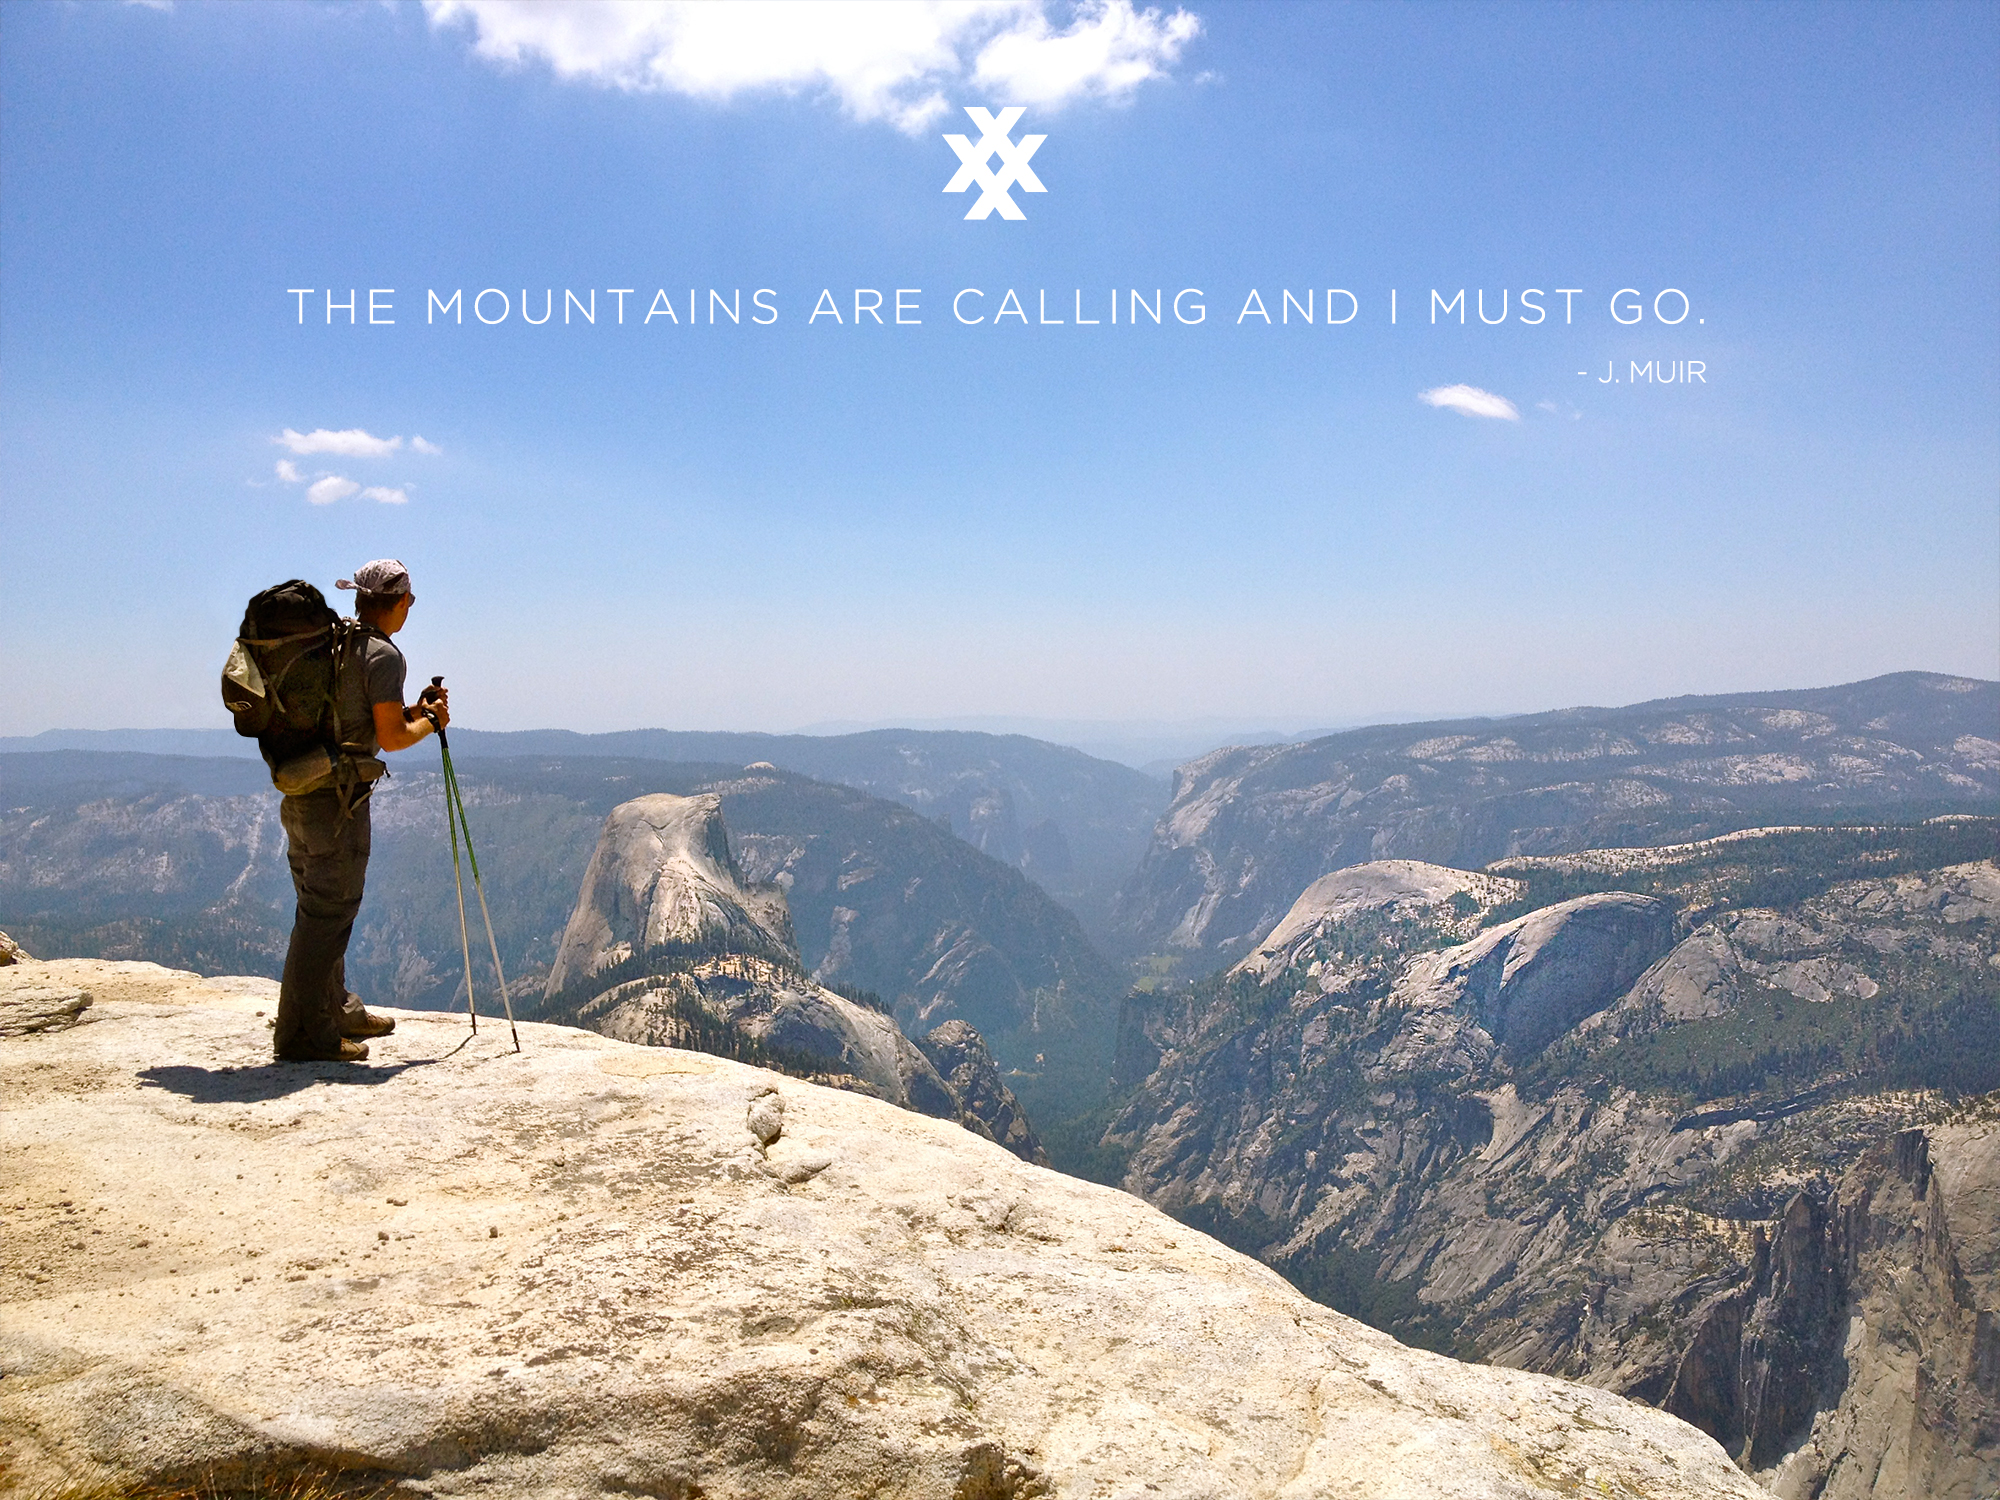 4xpedition backpacking equipment john muir yosemite national park half dome clouds rest